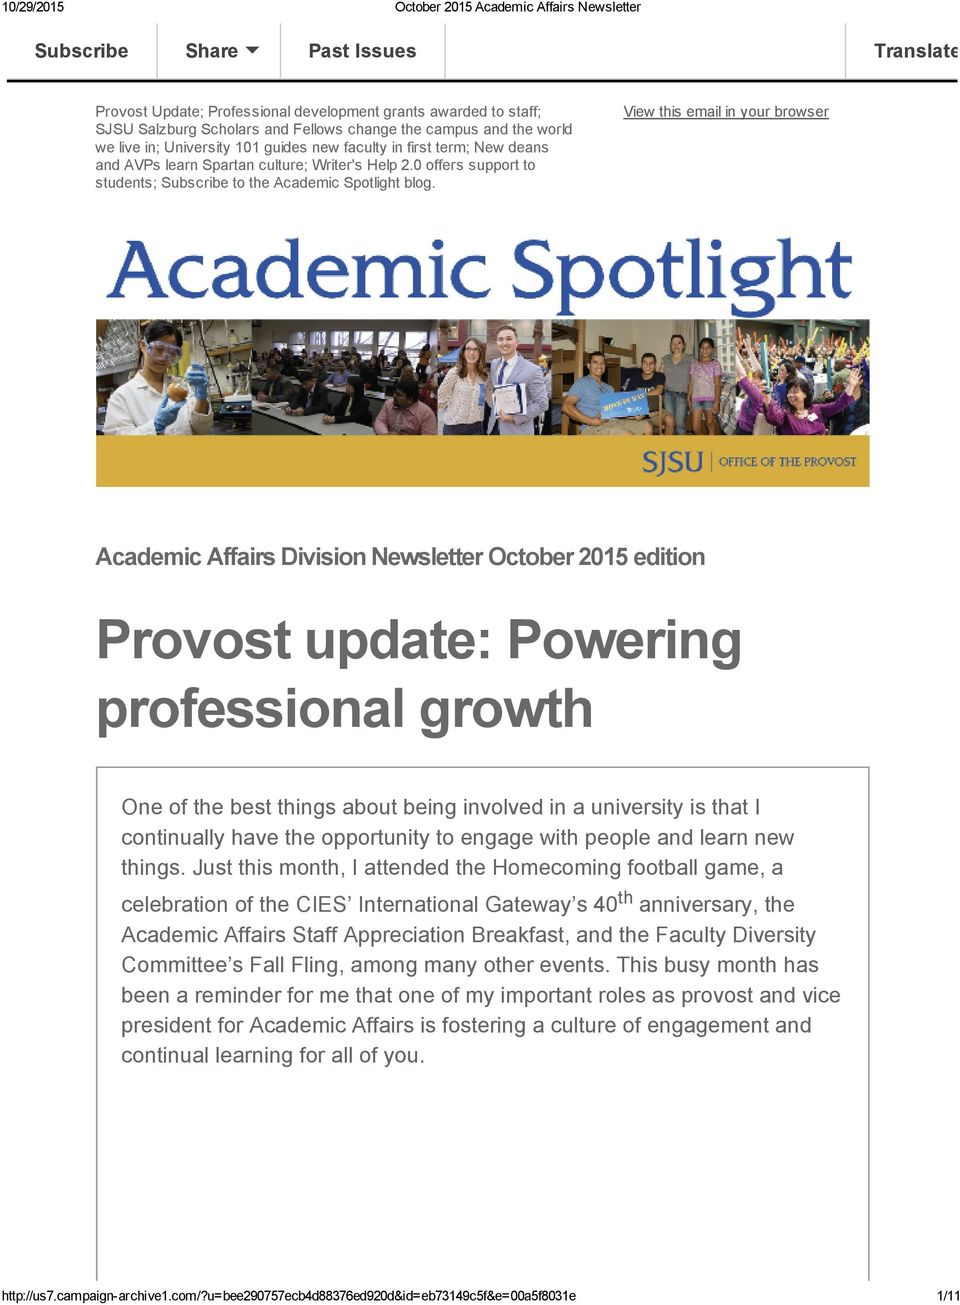 View this email in your browser Academic Affairs Division Newsletter October 2015 edition Provost update: Powering professional growth One of the best things about being involved in a university is